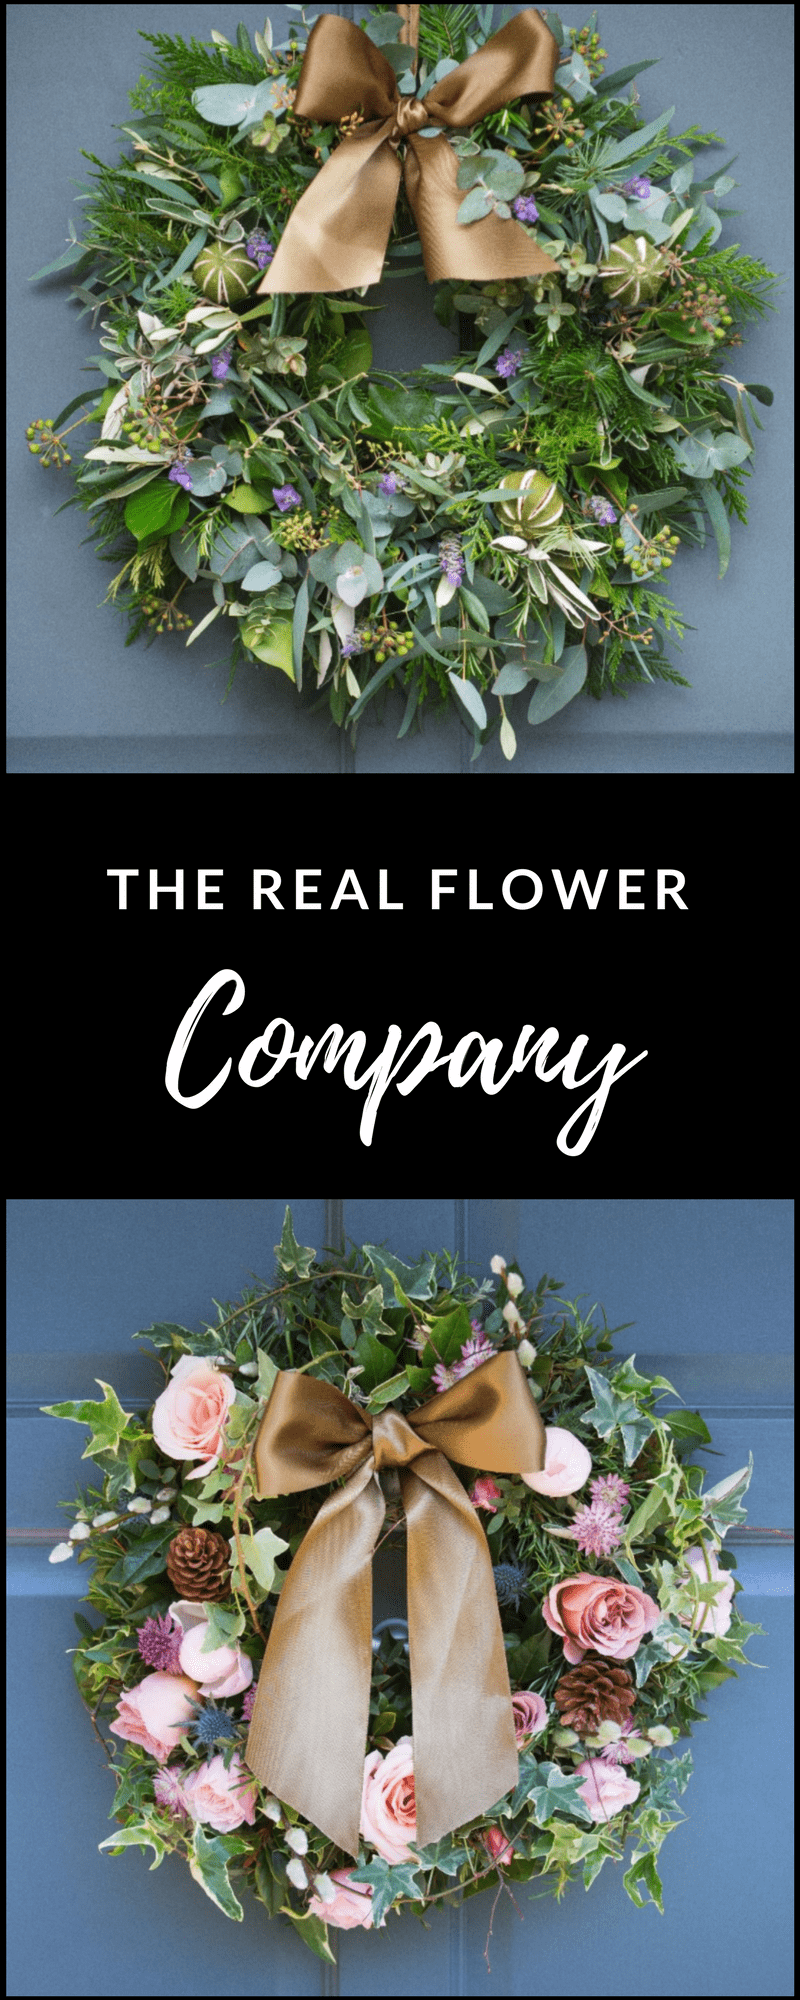 The real Flower Company Christmas Wreaths